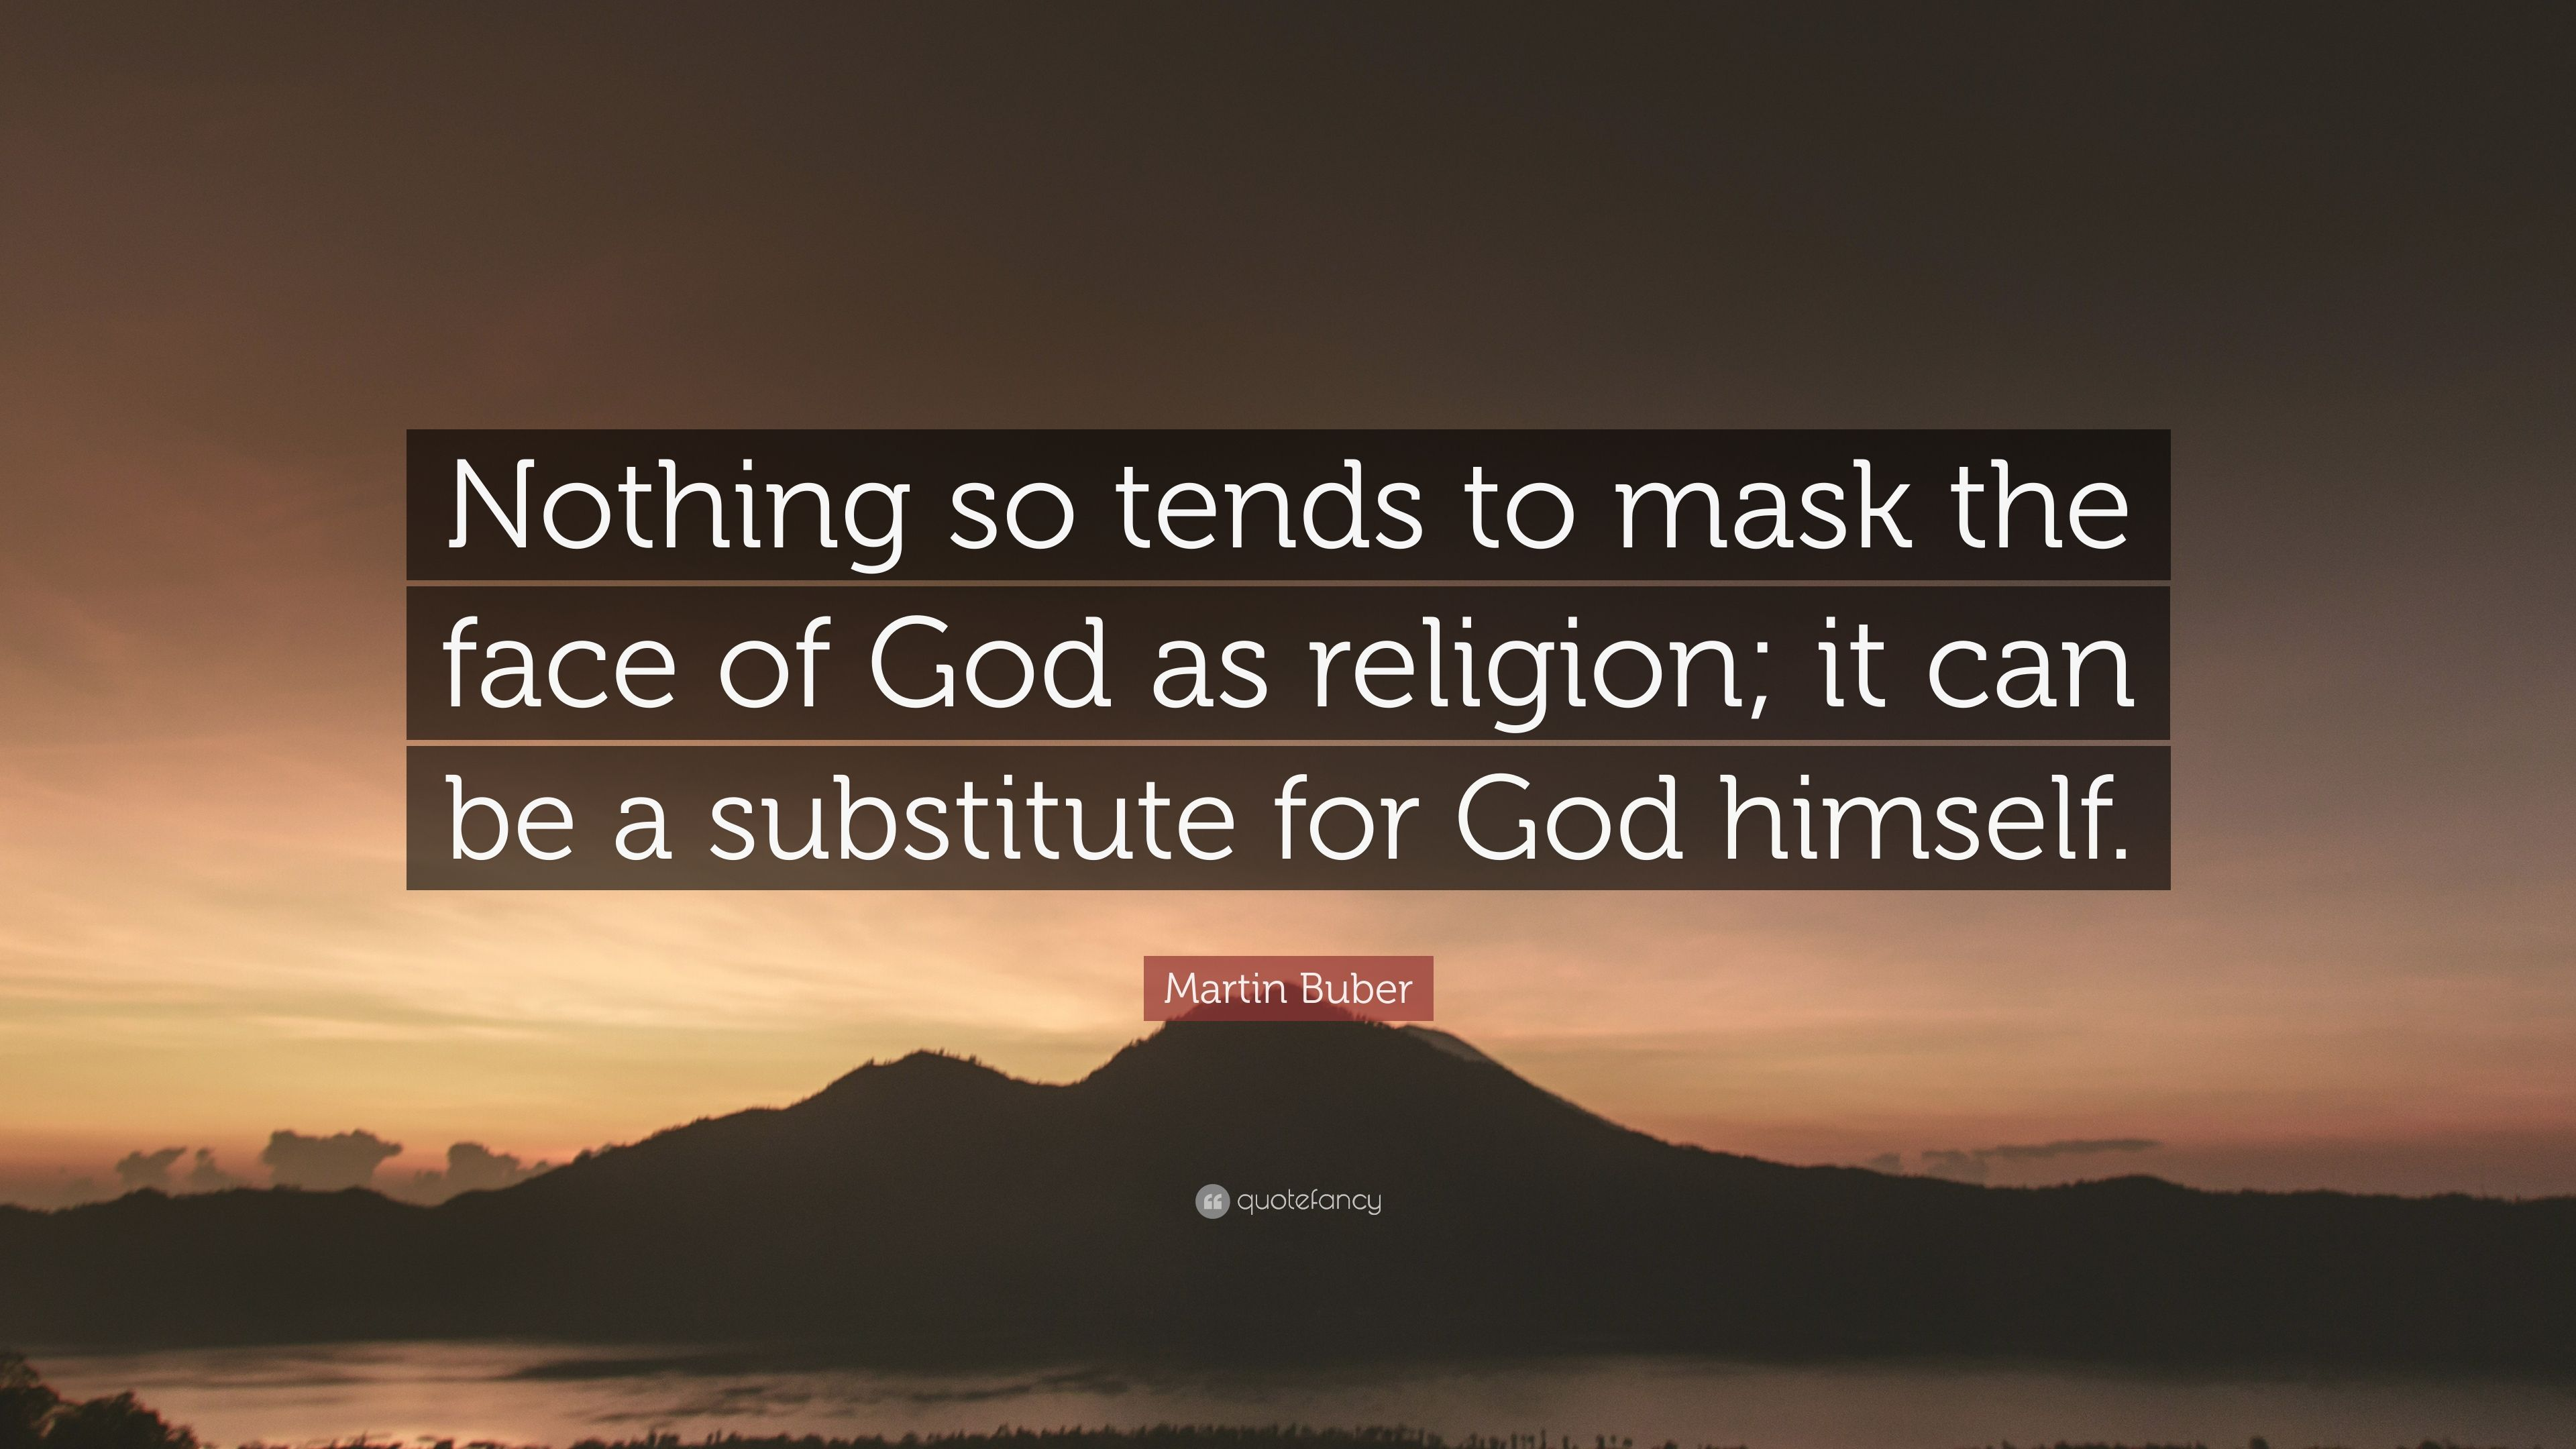 Bon Martin Buber Quote: U201cNothing So Tends To Mask The Face Of God As Religion